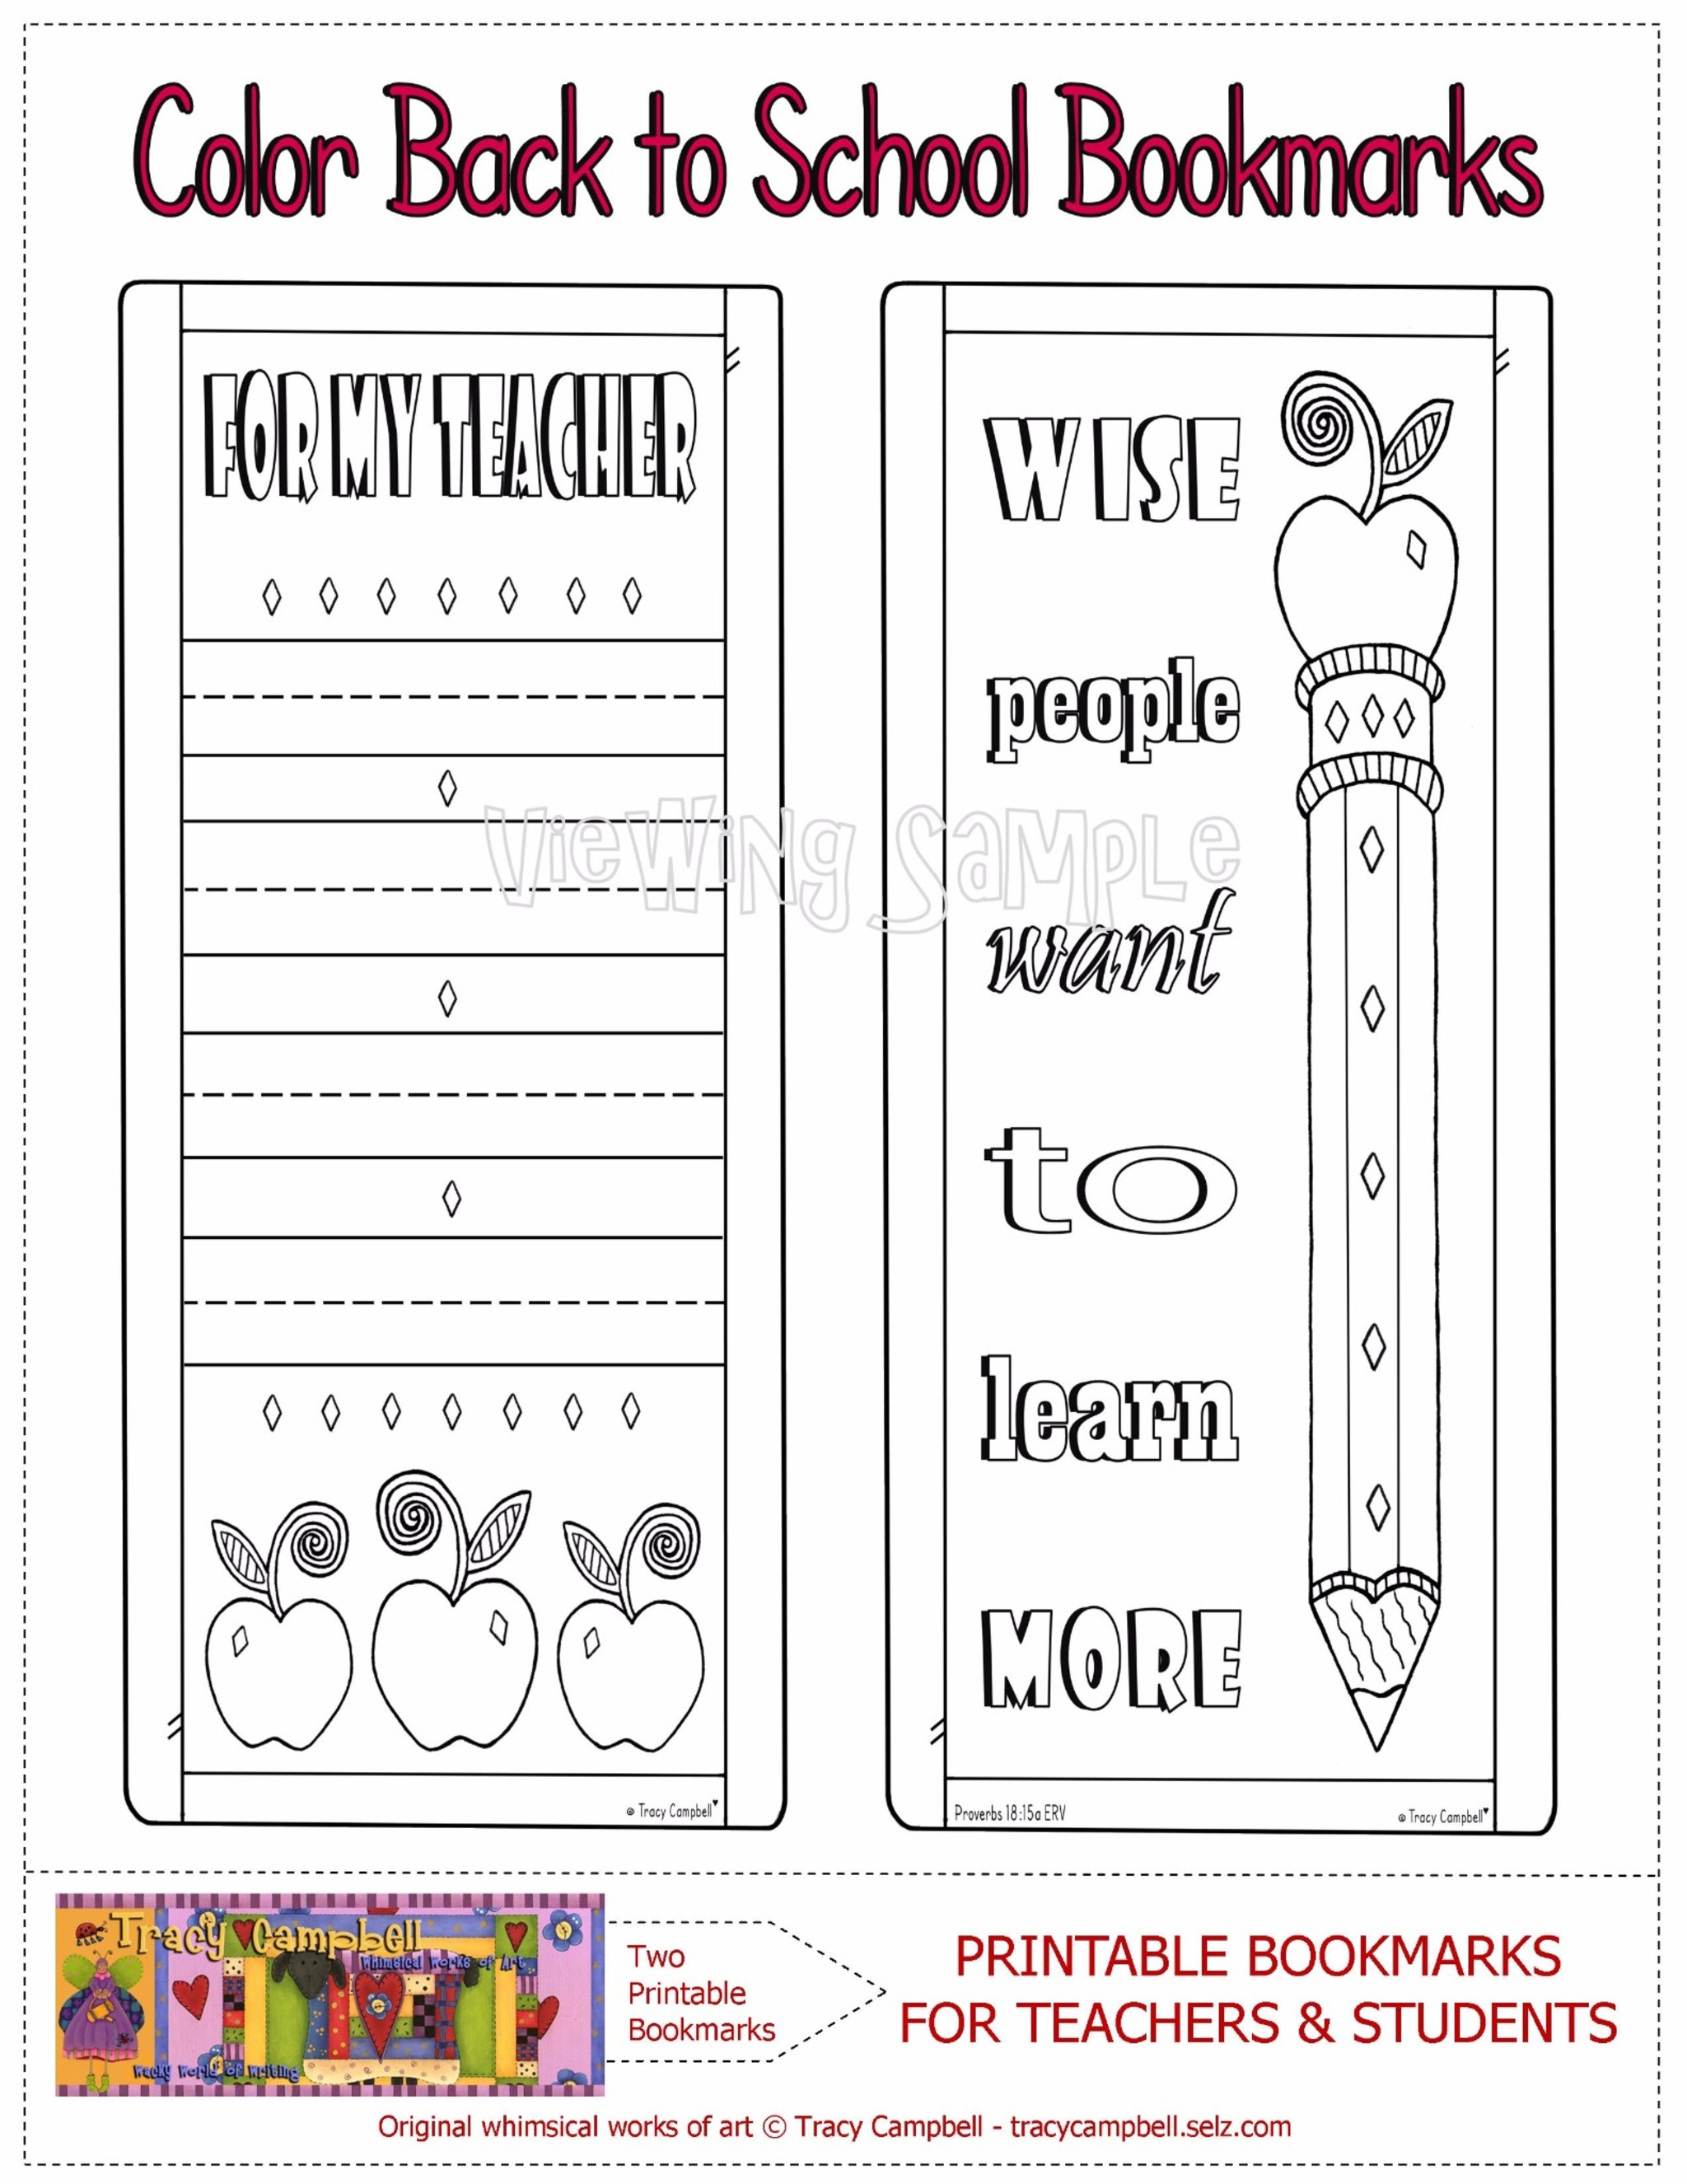 COLOR PRINTABLE BACK TO SCHOOL BOOKMARKS